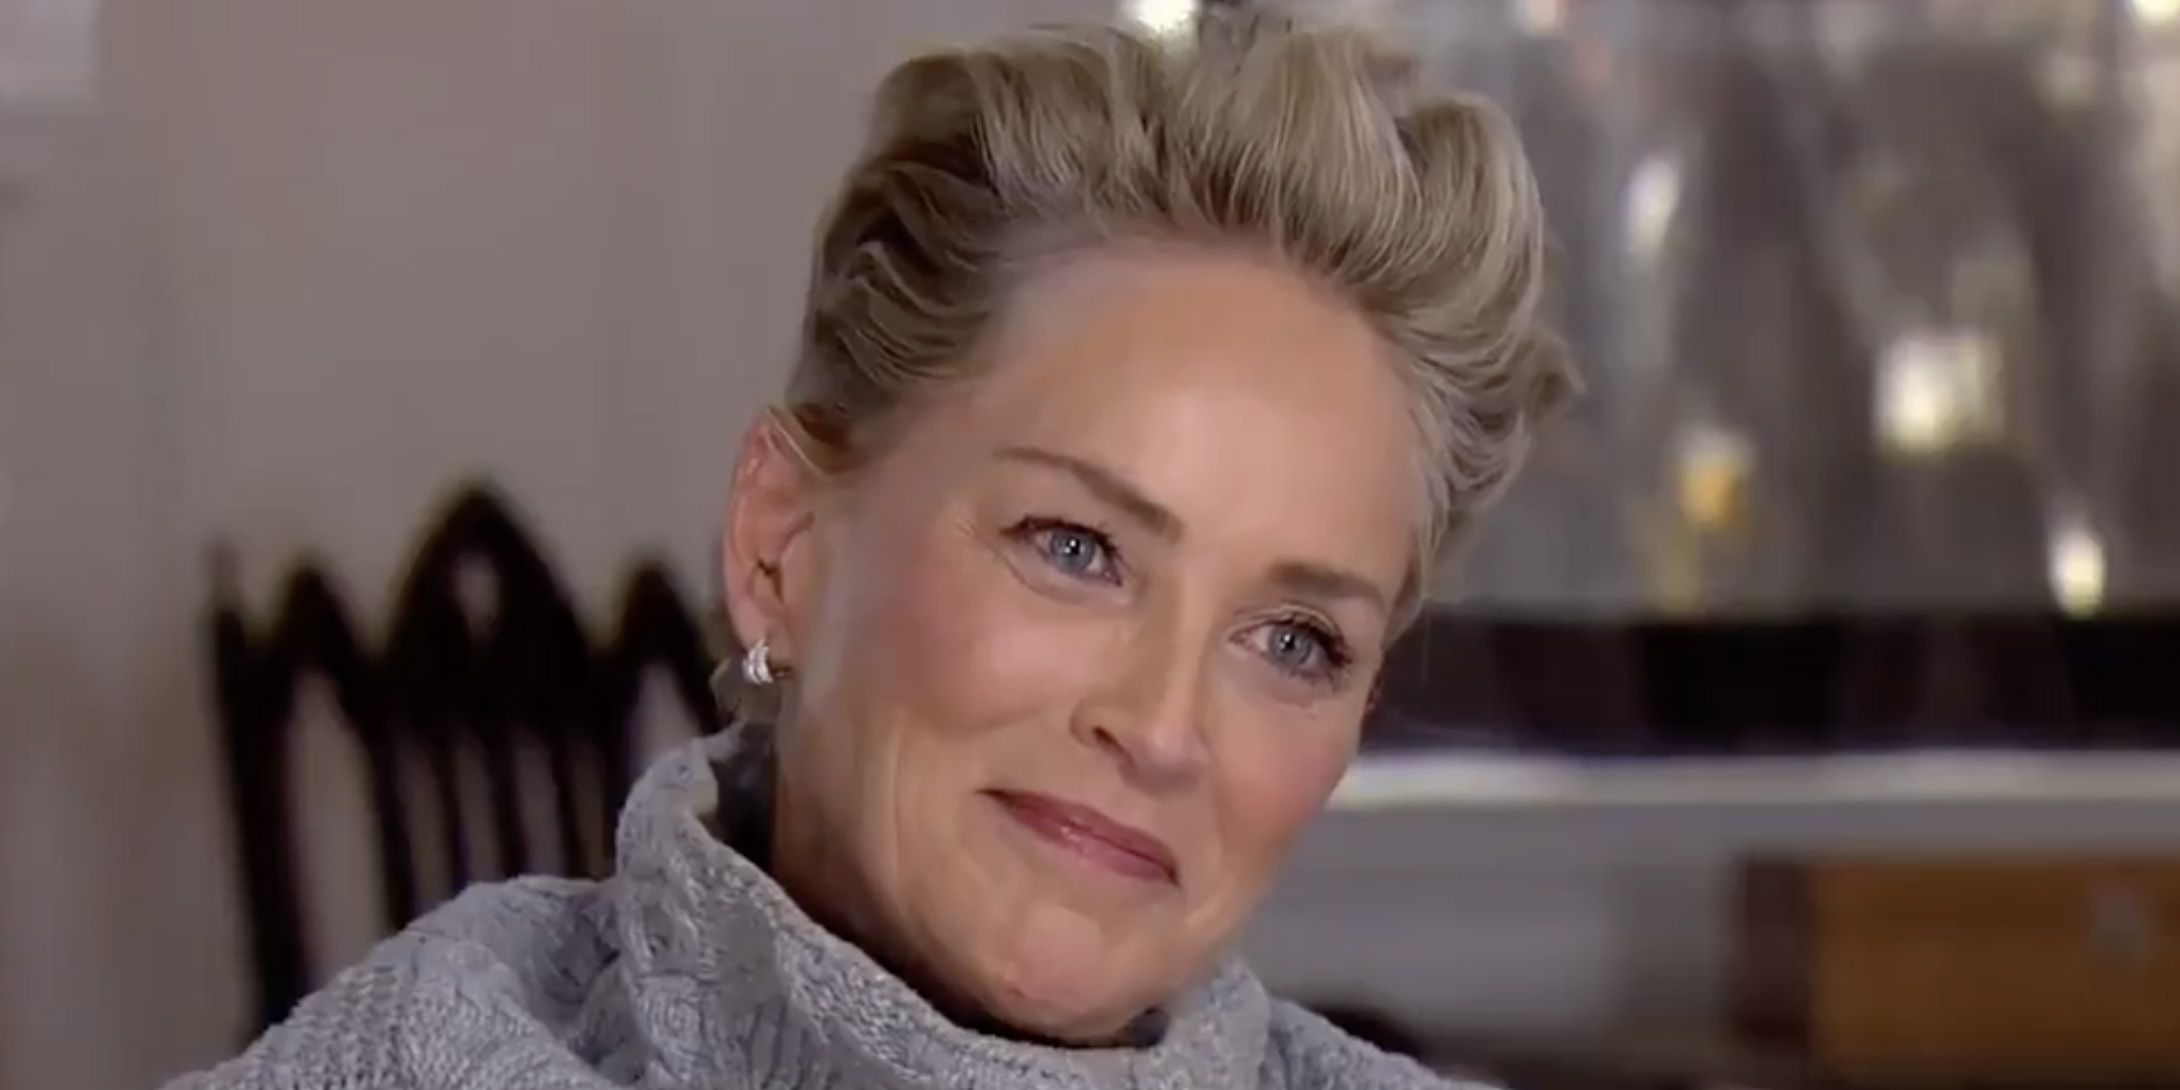 Sharon Stone Was Asked If She's Been Sexually Assaulted, and She Gave the Most Epic Response